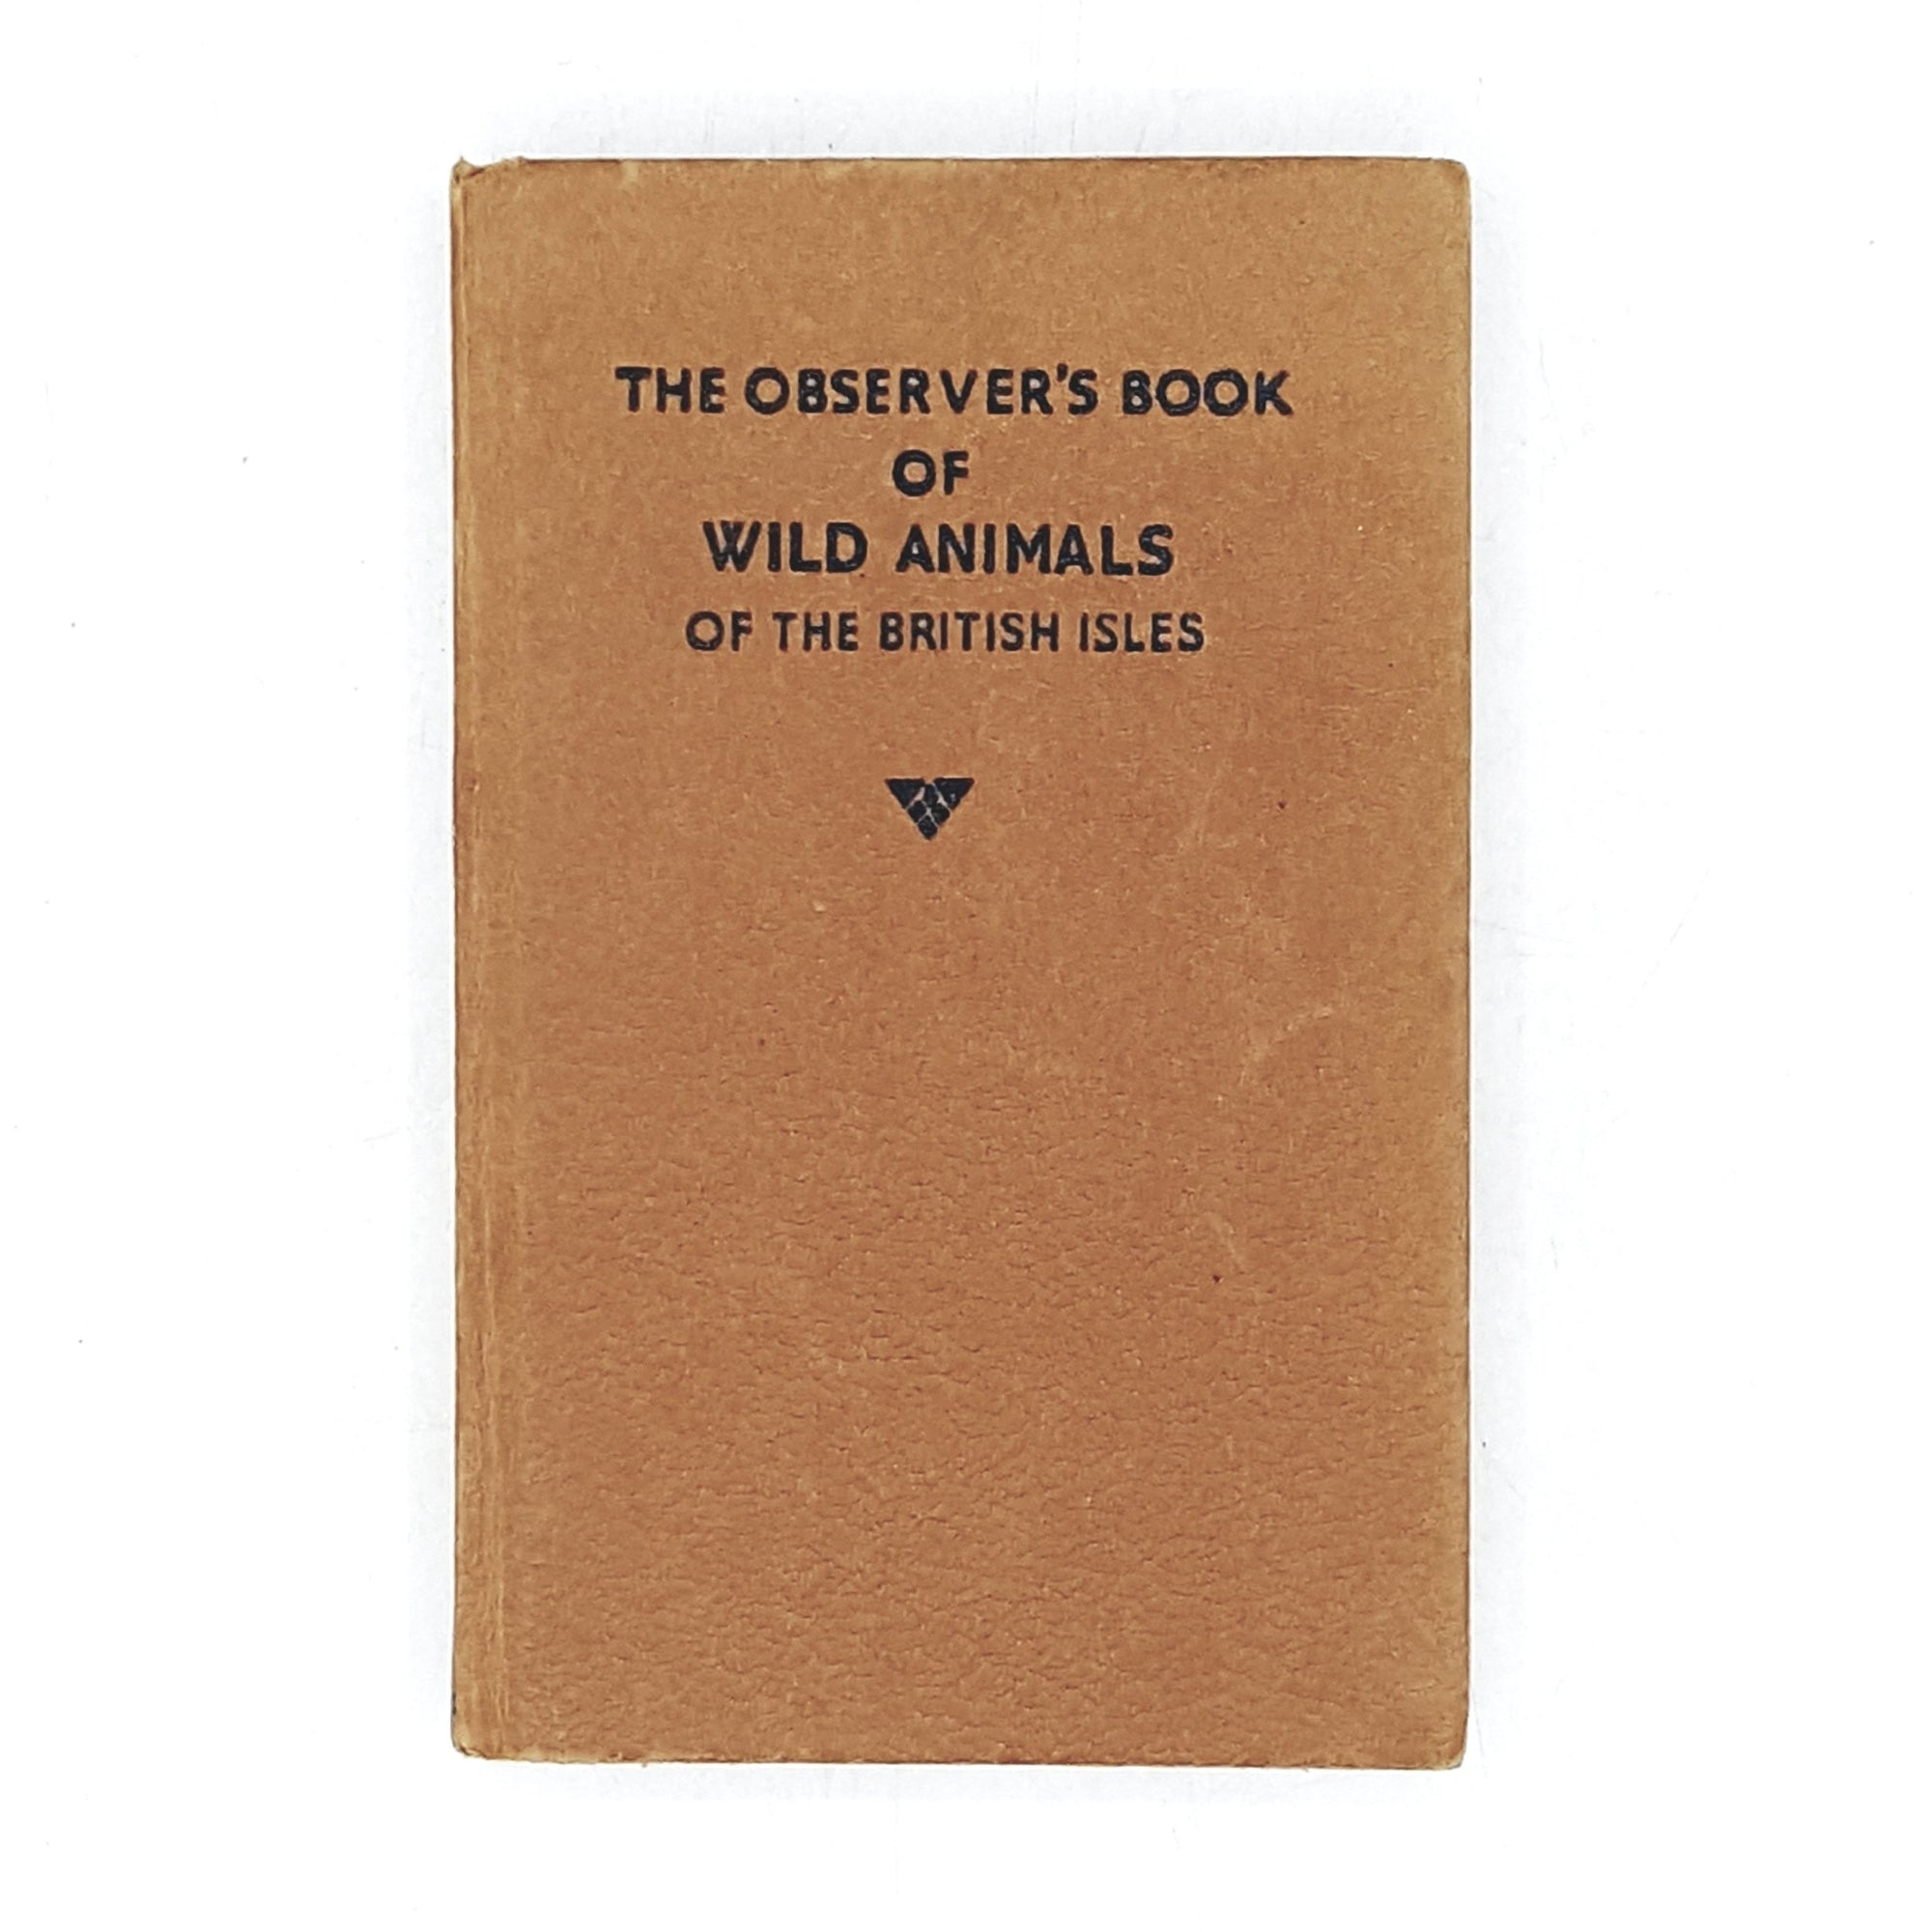 The Observer's Book of Wild Animals of the British Isles 1965